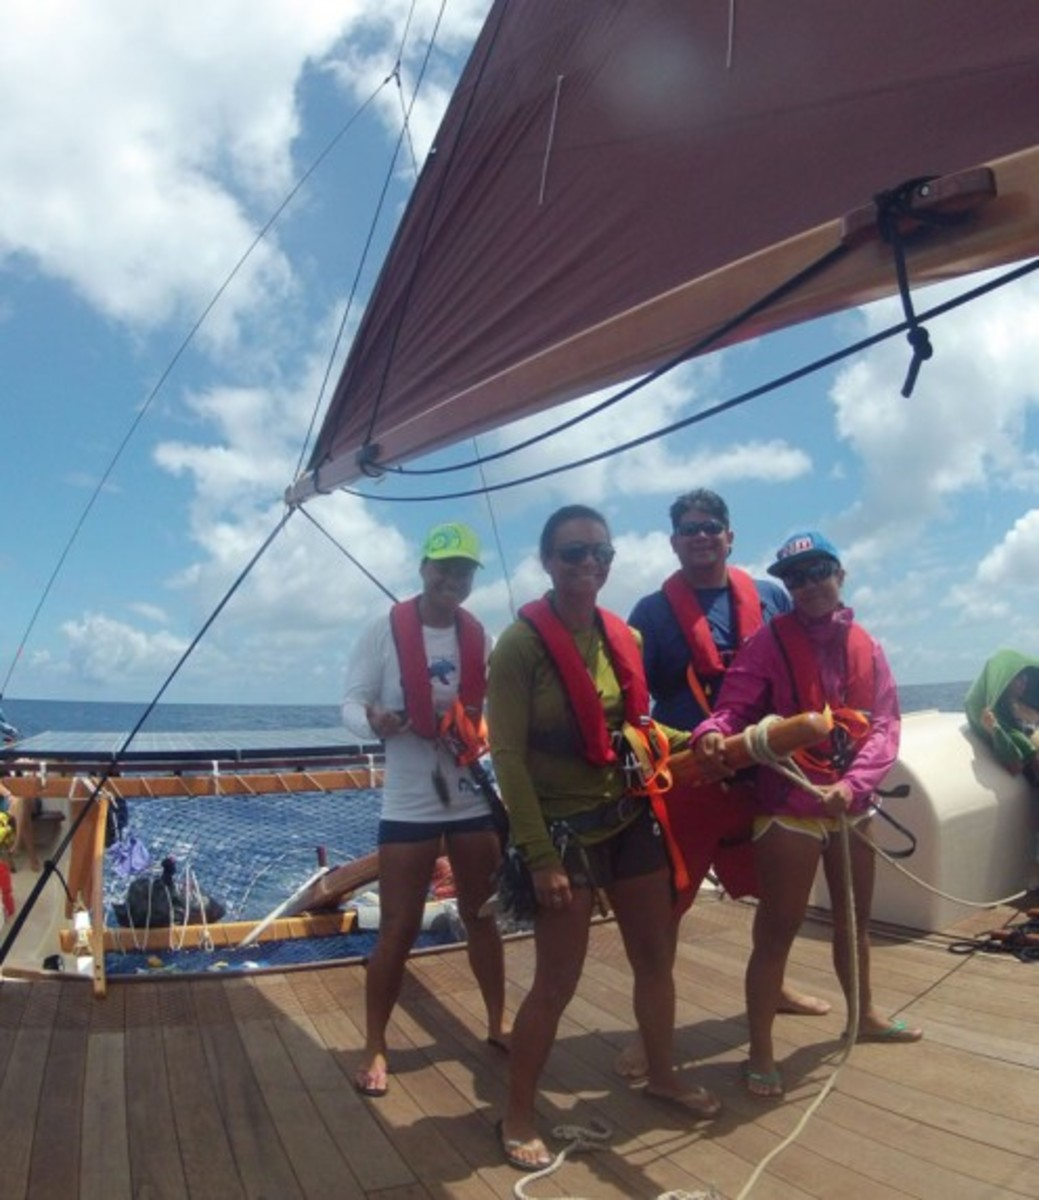 Hawaiian navigation courses are given at select college campuses in Hawai'i.